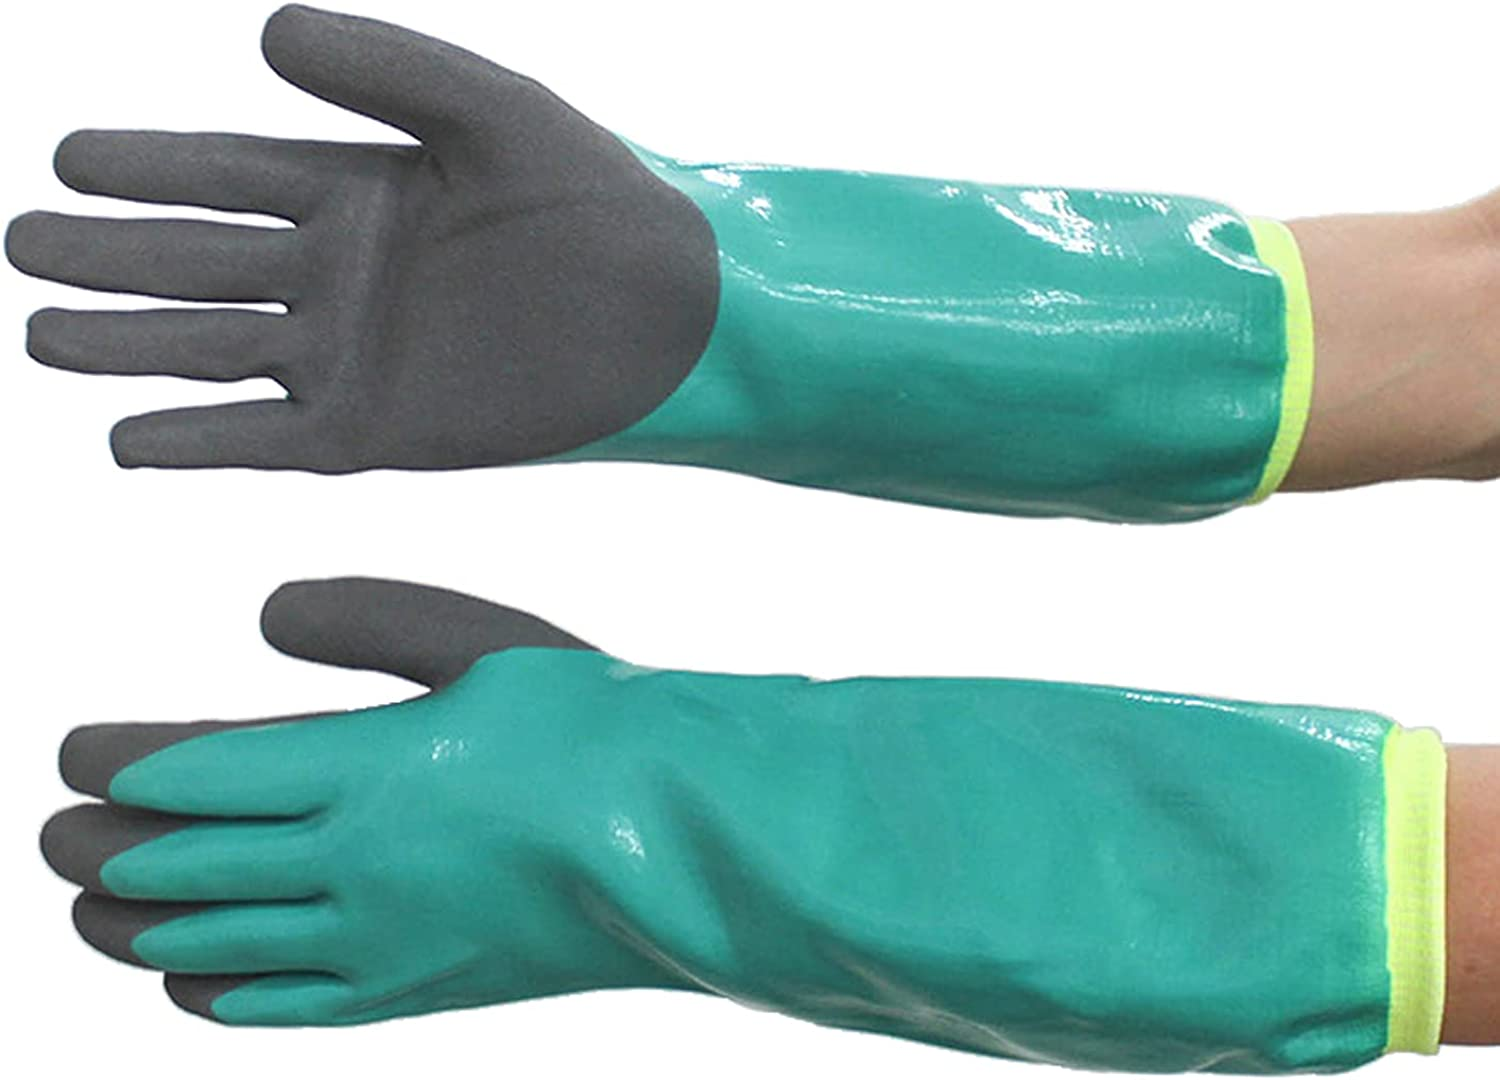 Stab-resistant Pond Cleaning Gloves are Made of Rubber, chemical resistant,16.9 Inches , Chemical Resistance, Warmth, Breathability, Four Seasons, Universal Protection for all Workplaces, One Pairs